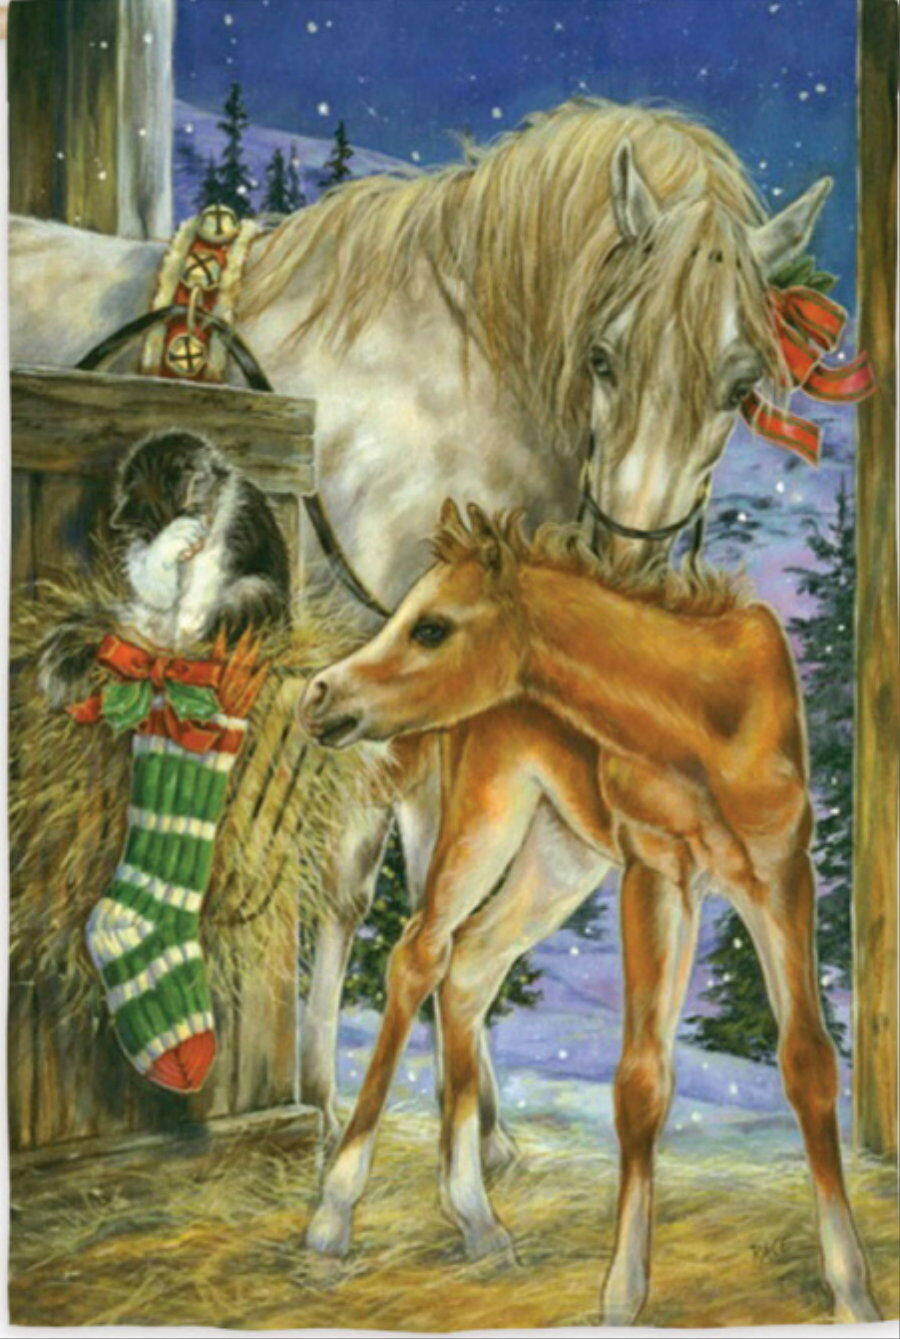 NEW LARGE EVERGREEN FLAG FOALS FIRST CHRISTMAS MARE HORSE CAT  29 X 43